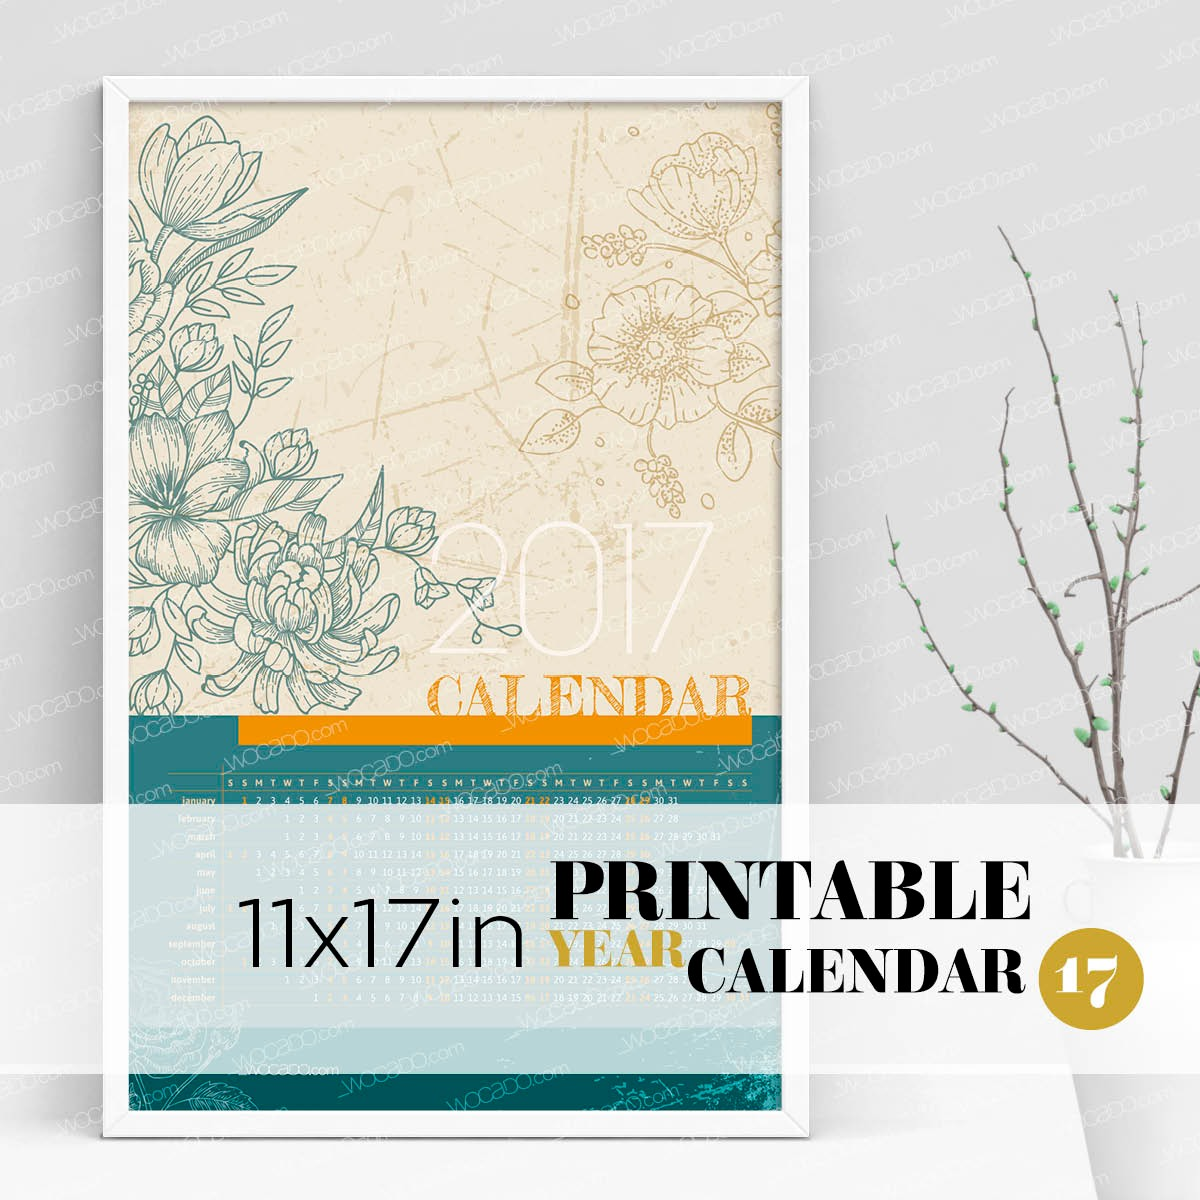 Secret Garden – Full Year Printable Calendar 2017 - 11x17 Poster, Green Burlywood Decorative Flowers